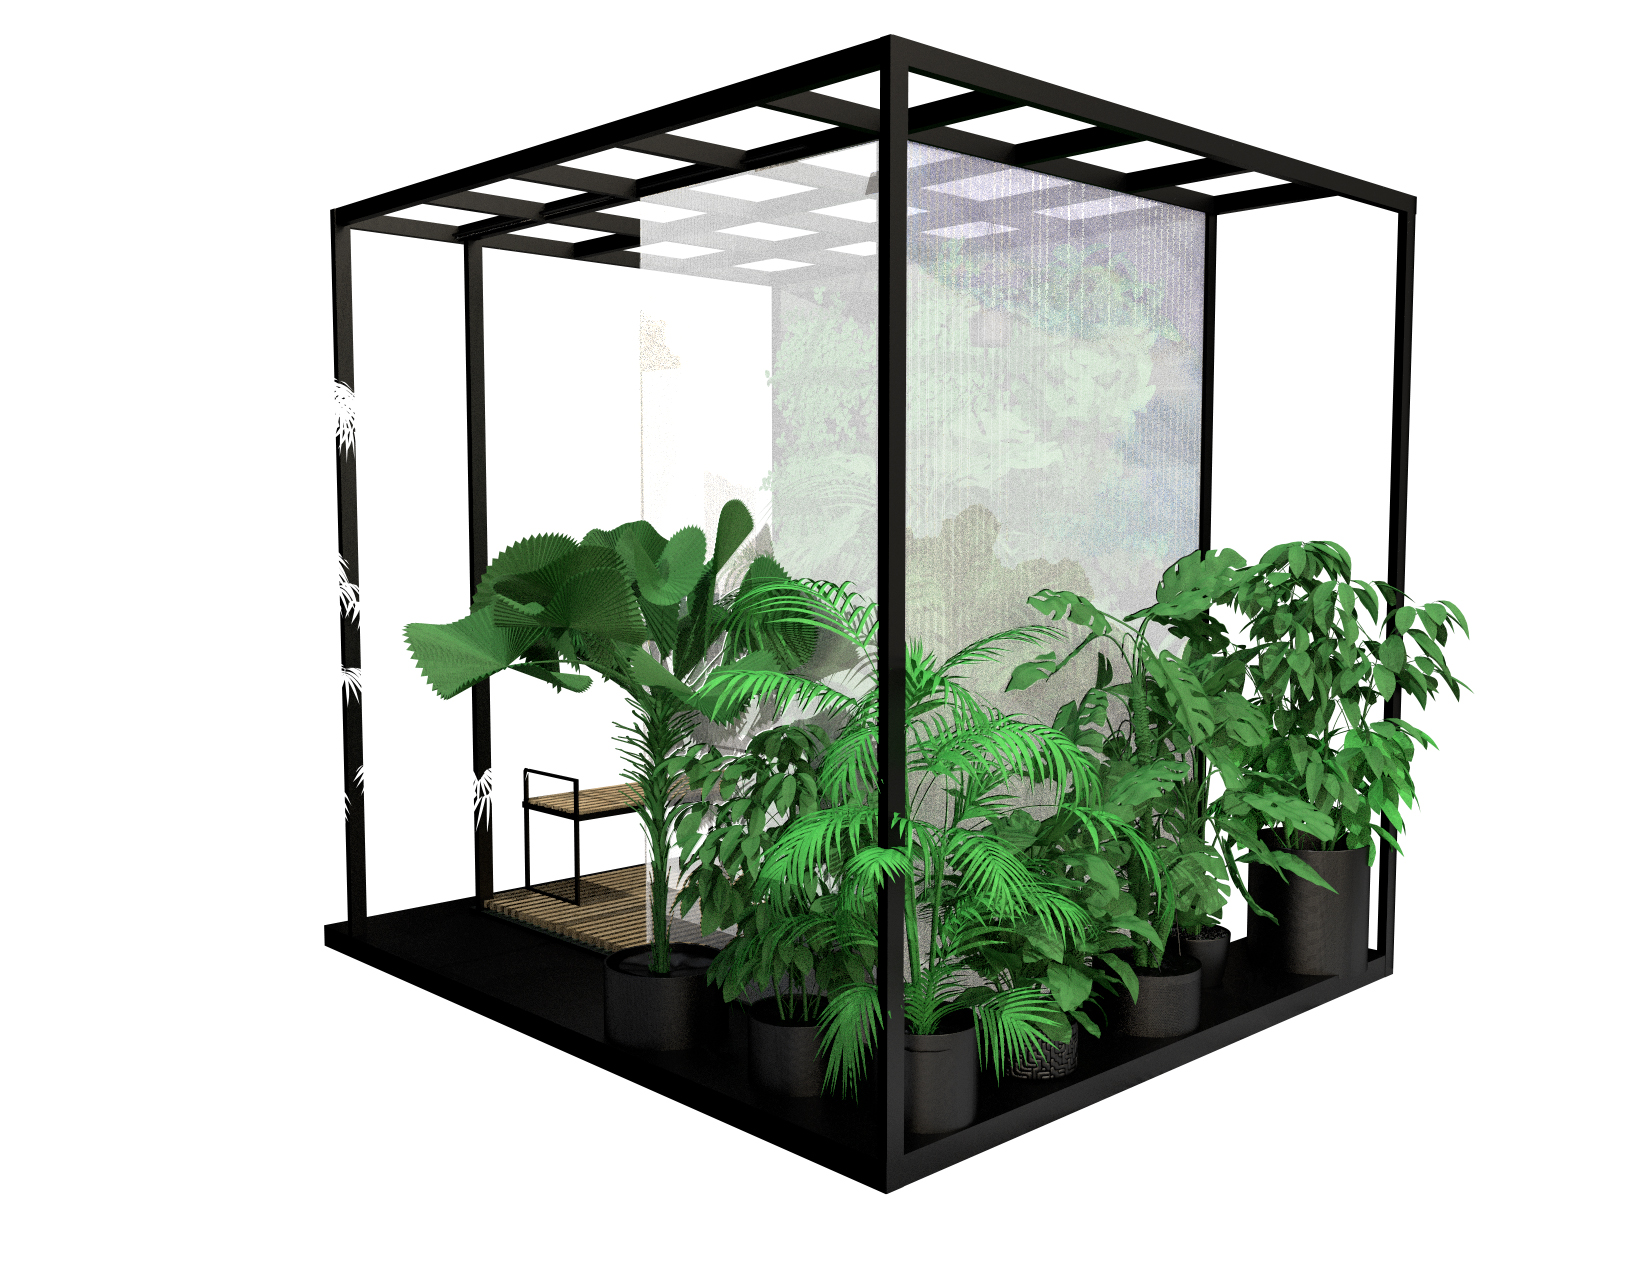 HYPERCUBE greenhouse no door.jpg